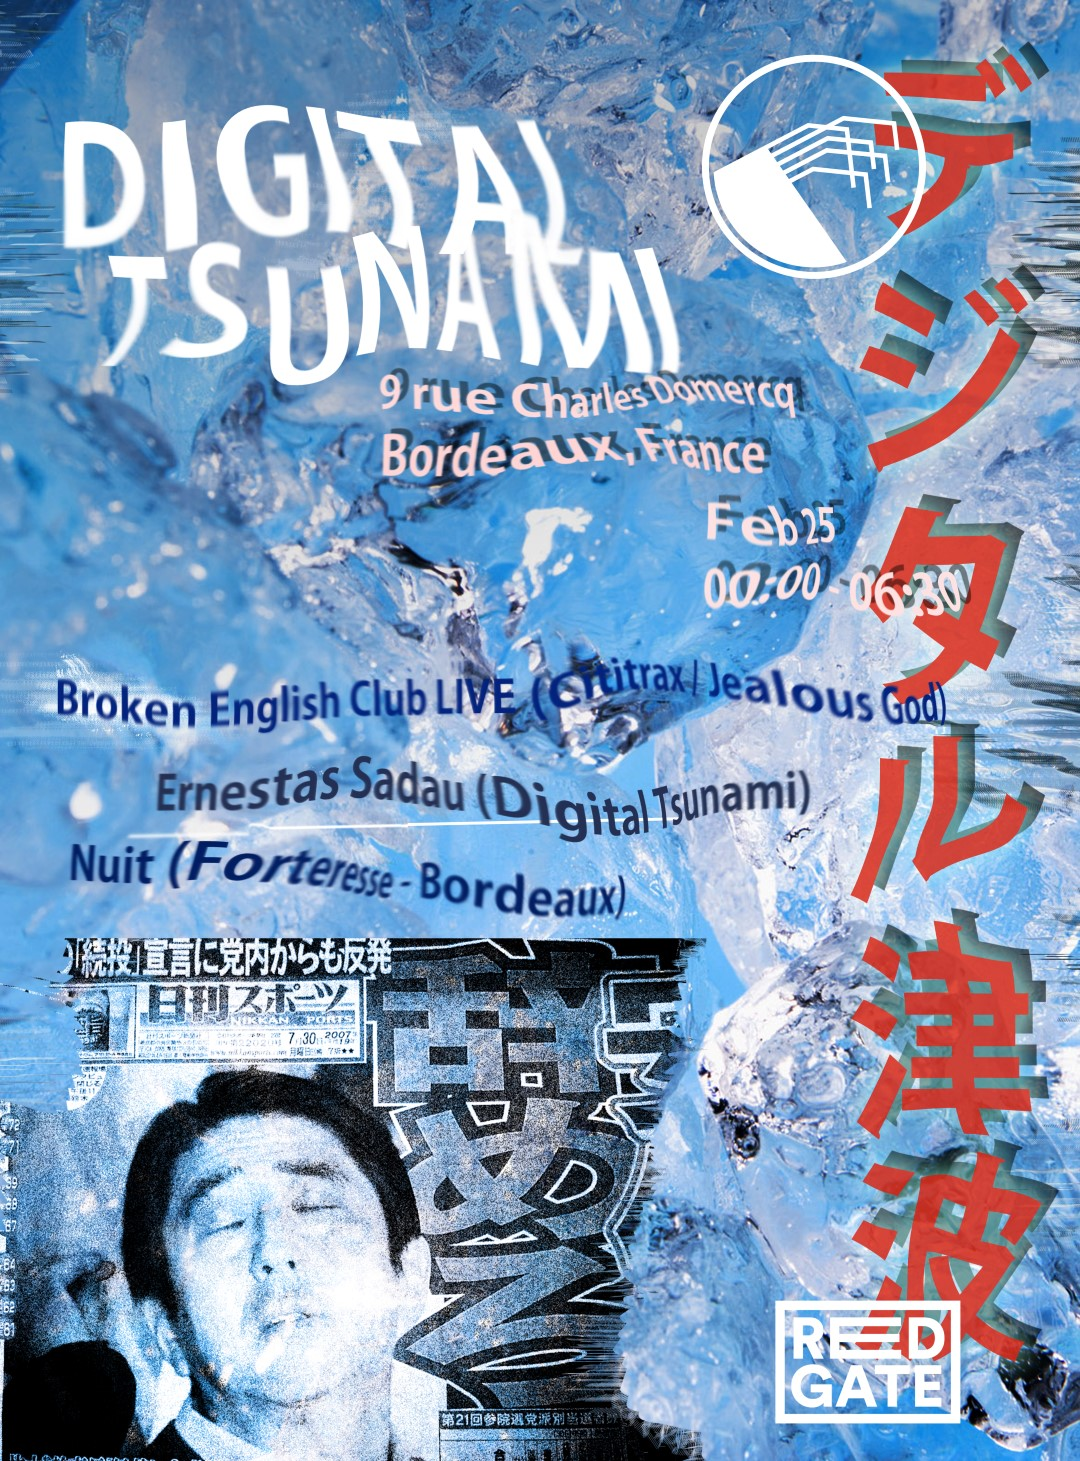 Digital Tsunami: Broken English Club Live